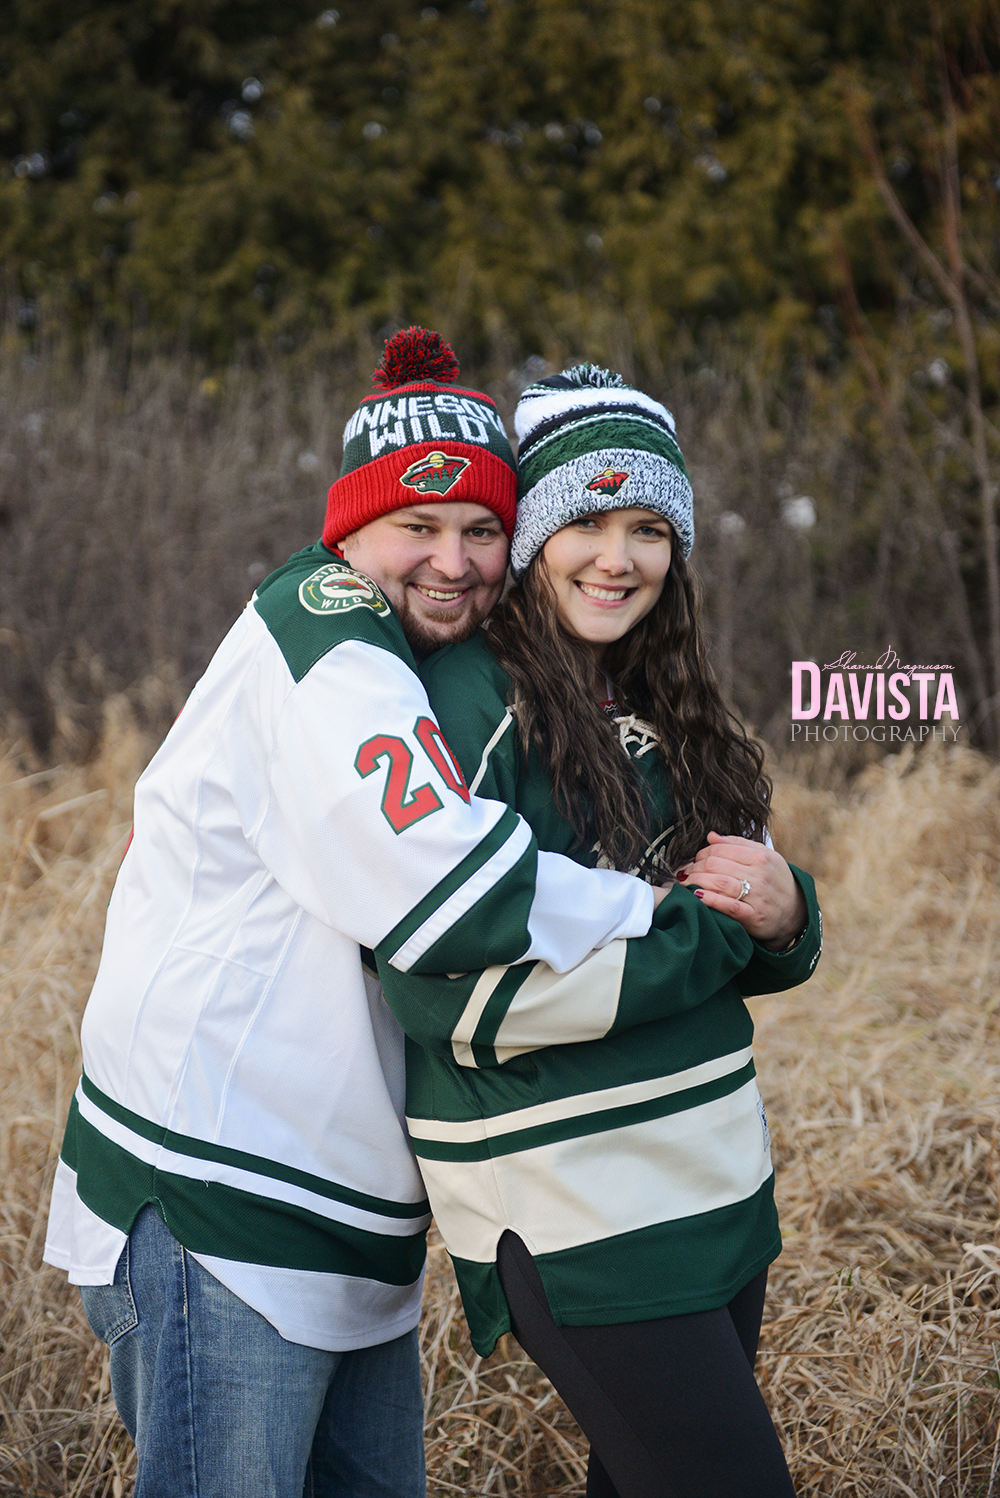 MN-wild-hockey-fans-engaged-couple